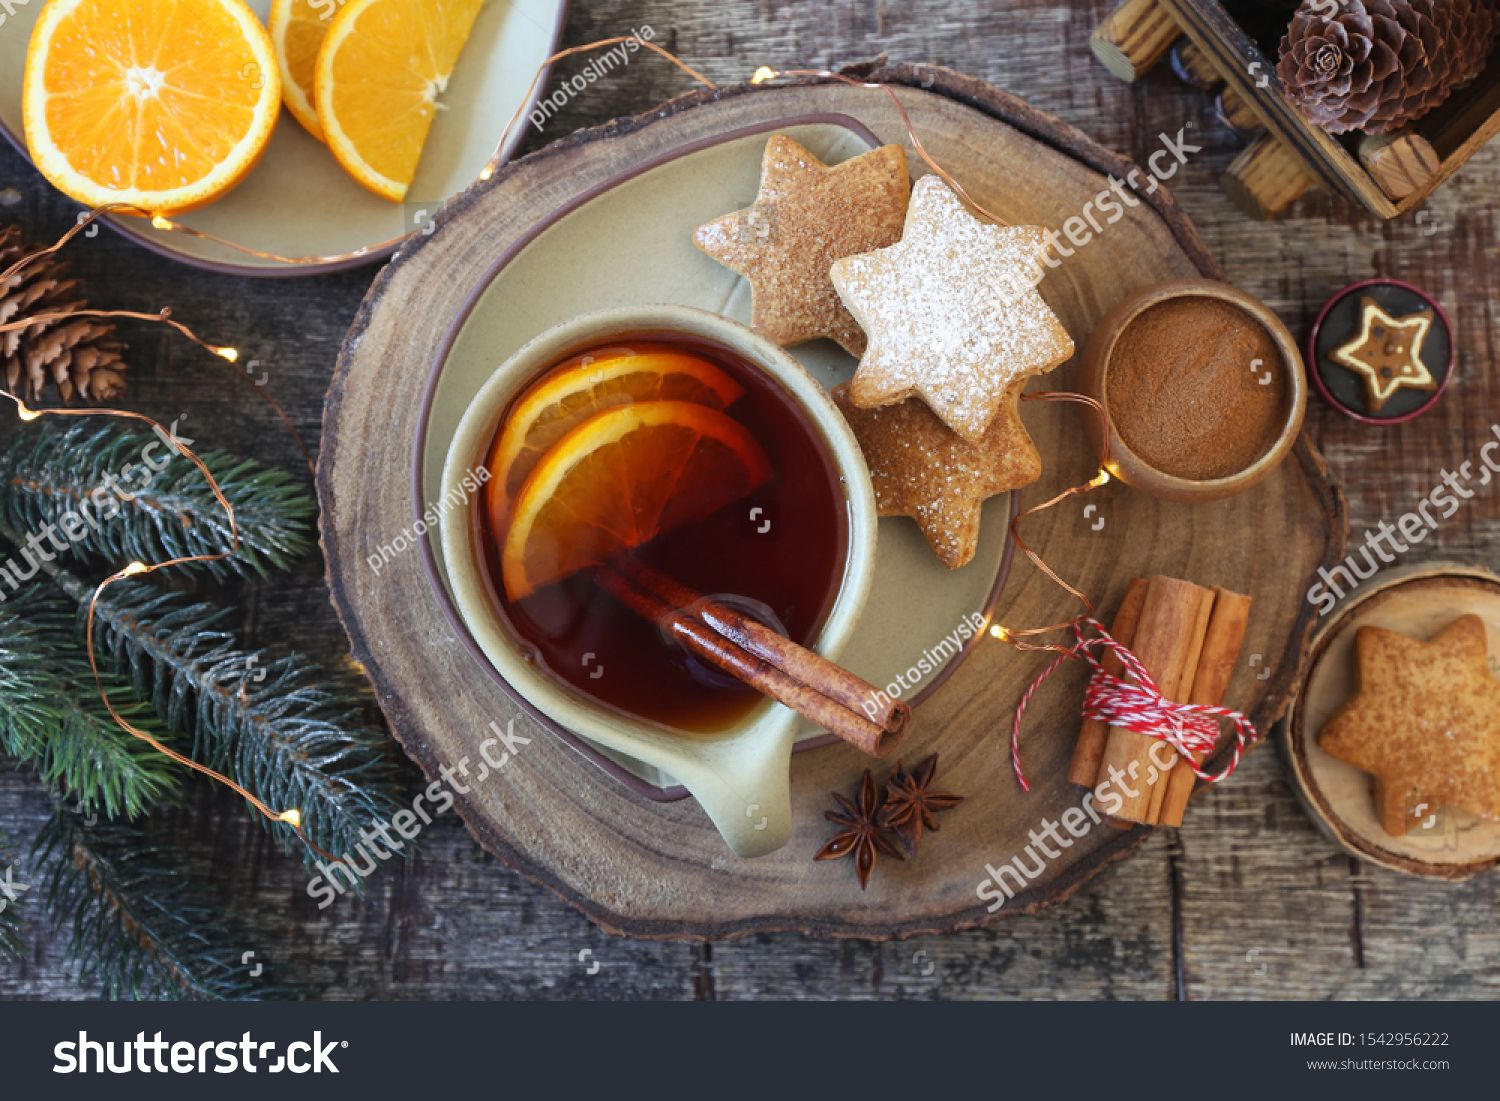 Christmas Cinnamon Cookies Spice Cake Cup Of Spicy Tea And New Year S Decoration Rustic Style Top View Royalty Cinnamon Cookies Spicy Tea Food And Drink